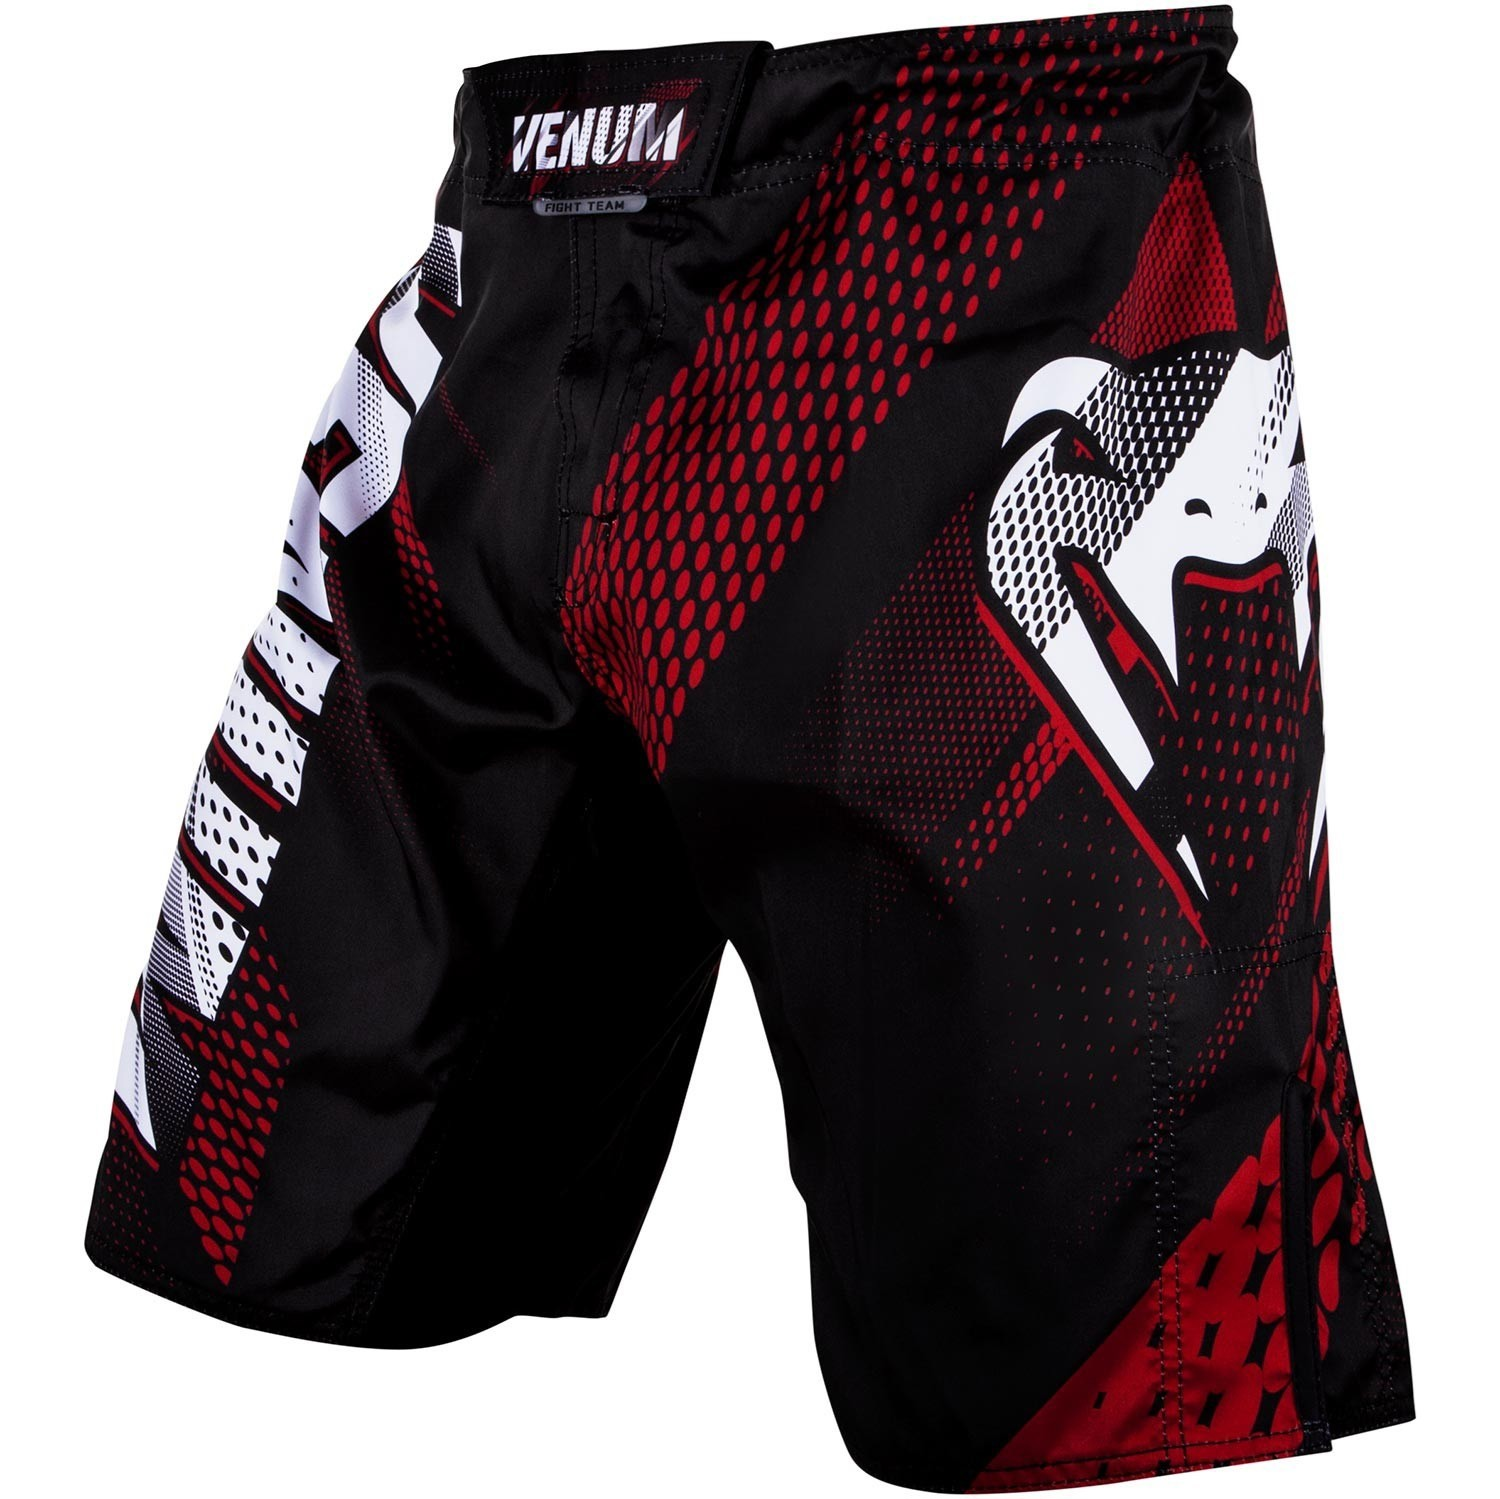 QUẦN VENUM RAPID FIGHTSHORTS - BLACK/RED